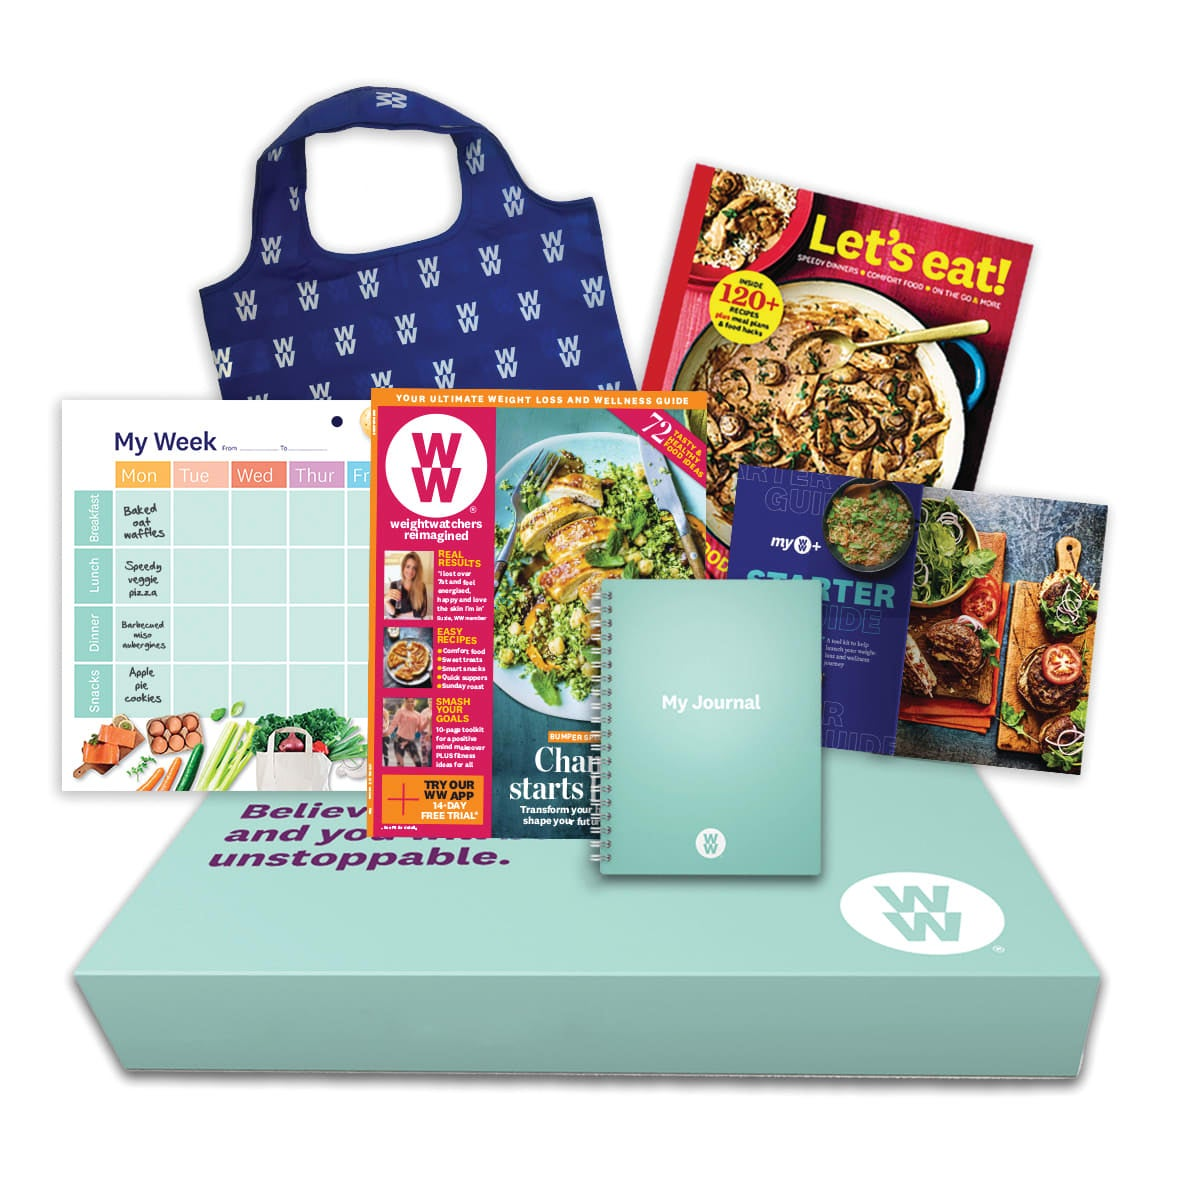 WW 12 Month At Home Kit, Includes 12 month Digital subscription, WW starter guide, Let's Eat! Cookbook, Meal Planner, food and activity Journal, Tote Bag